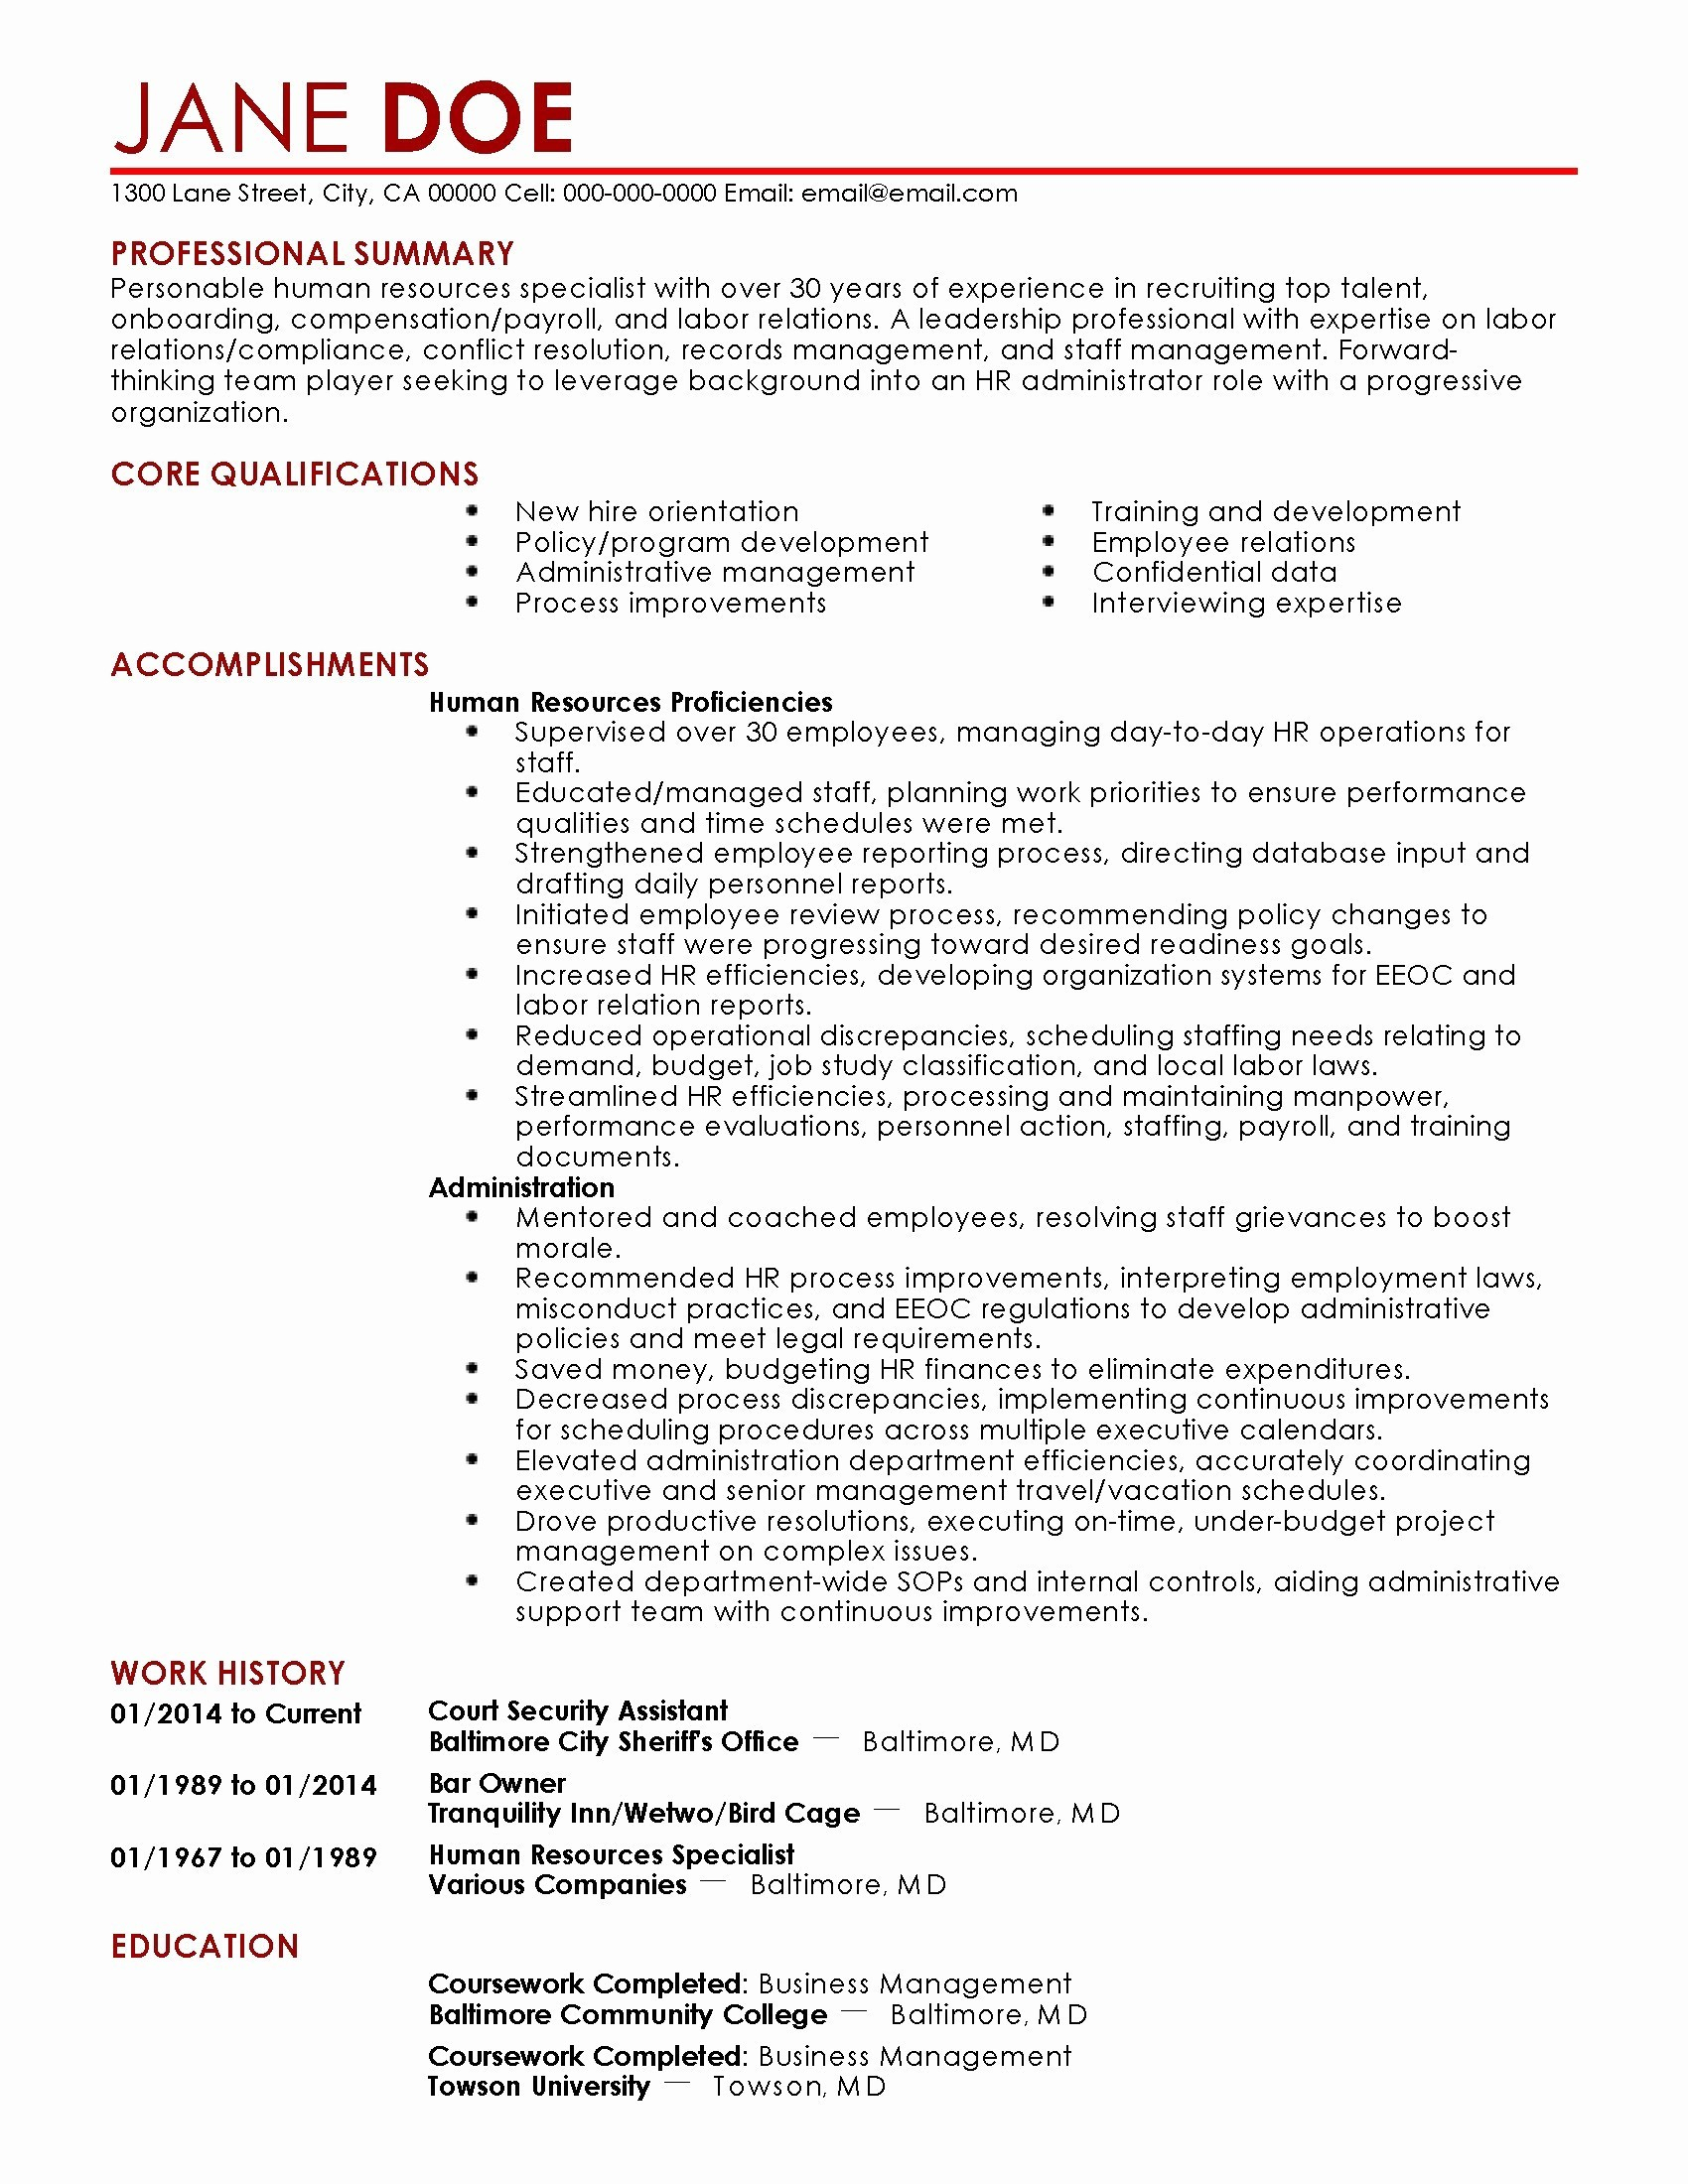 Resume Cover Letter Template for Medical assistant - Functional Resume Examples Fresh Medical assistant Resumes New